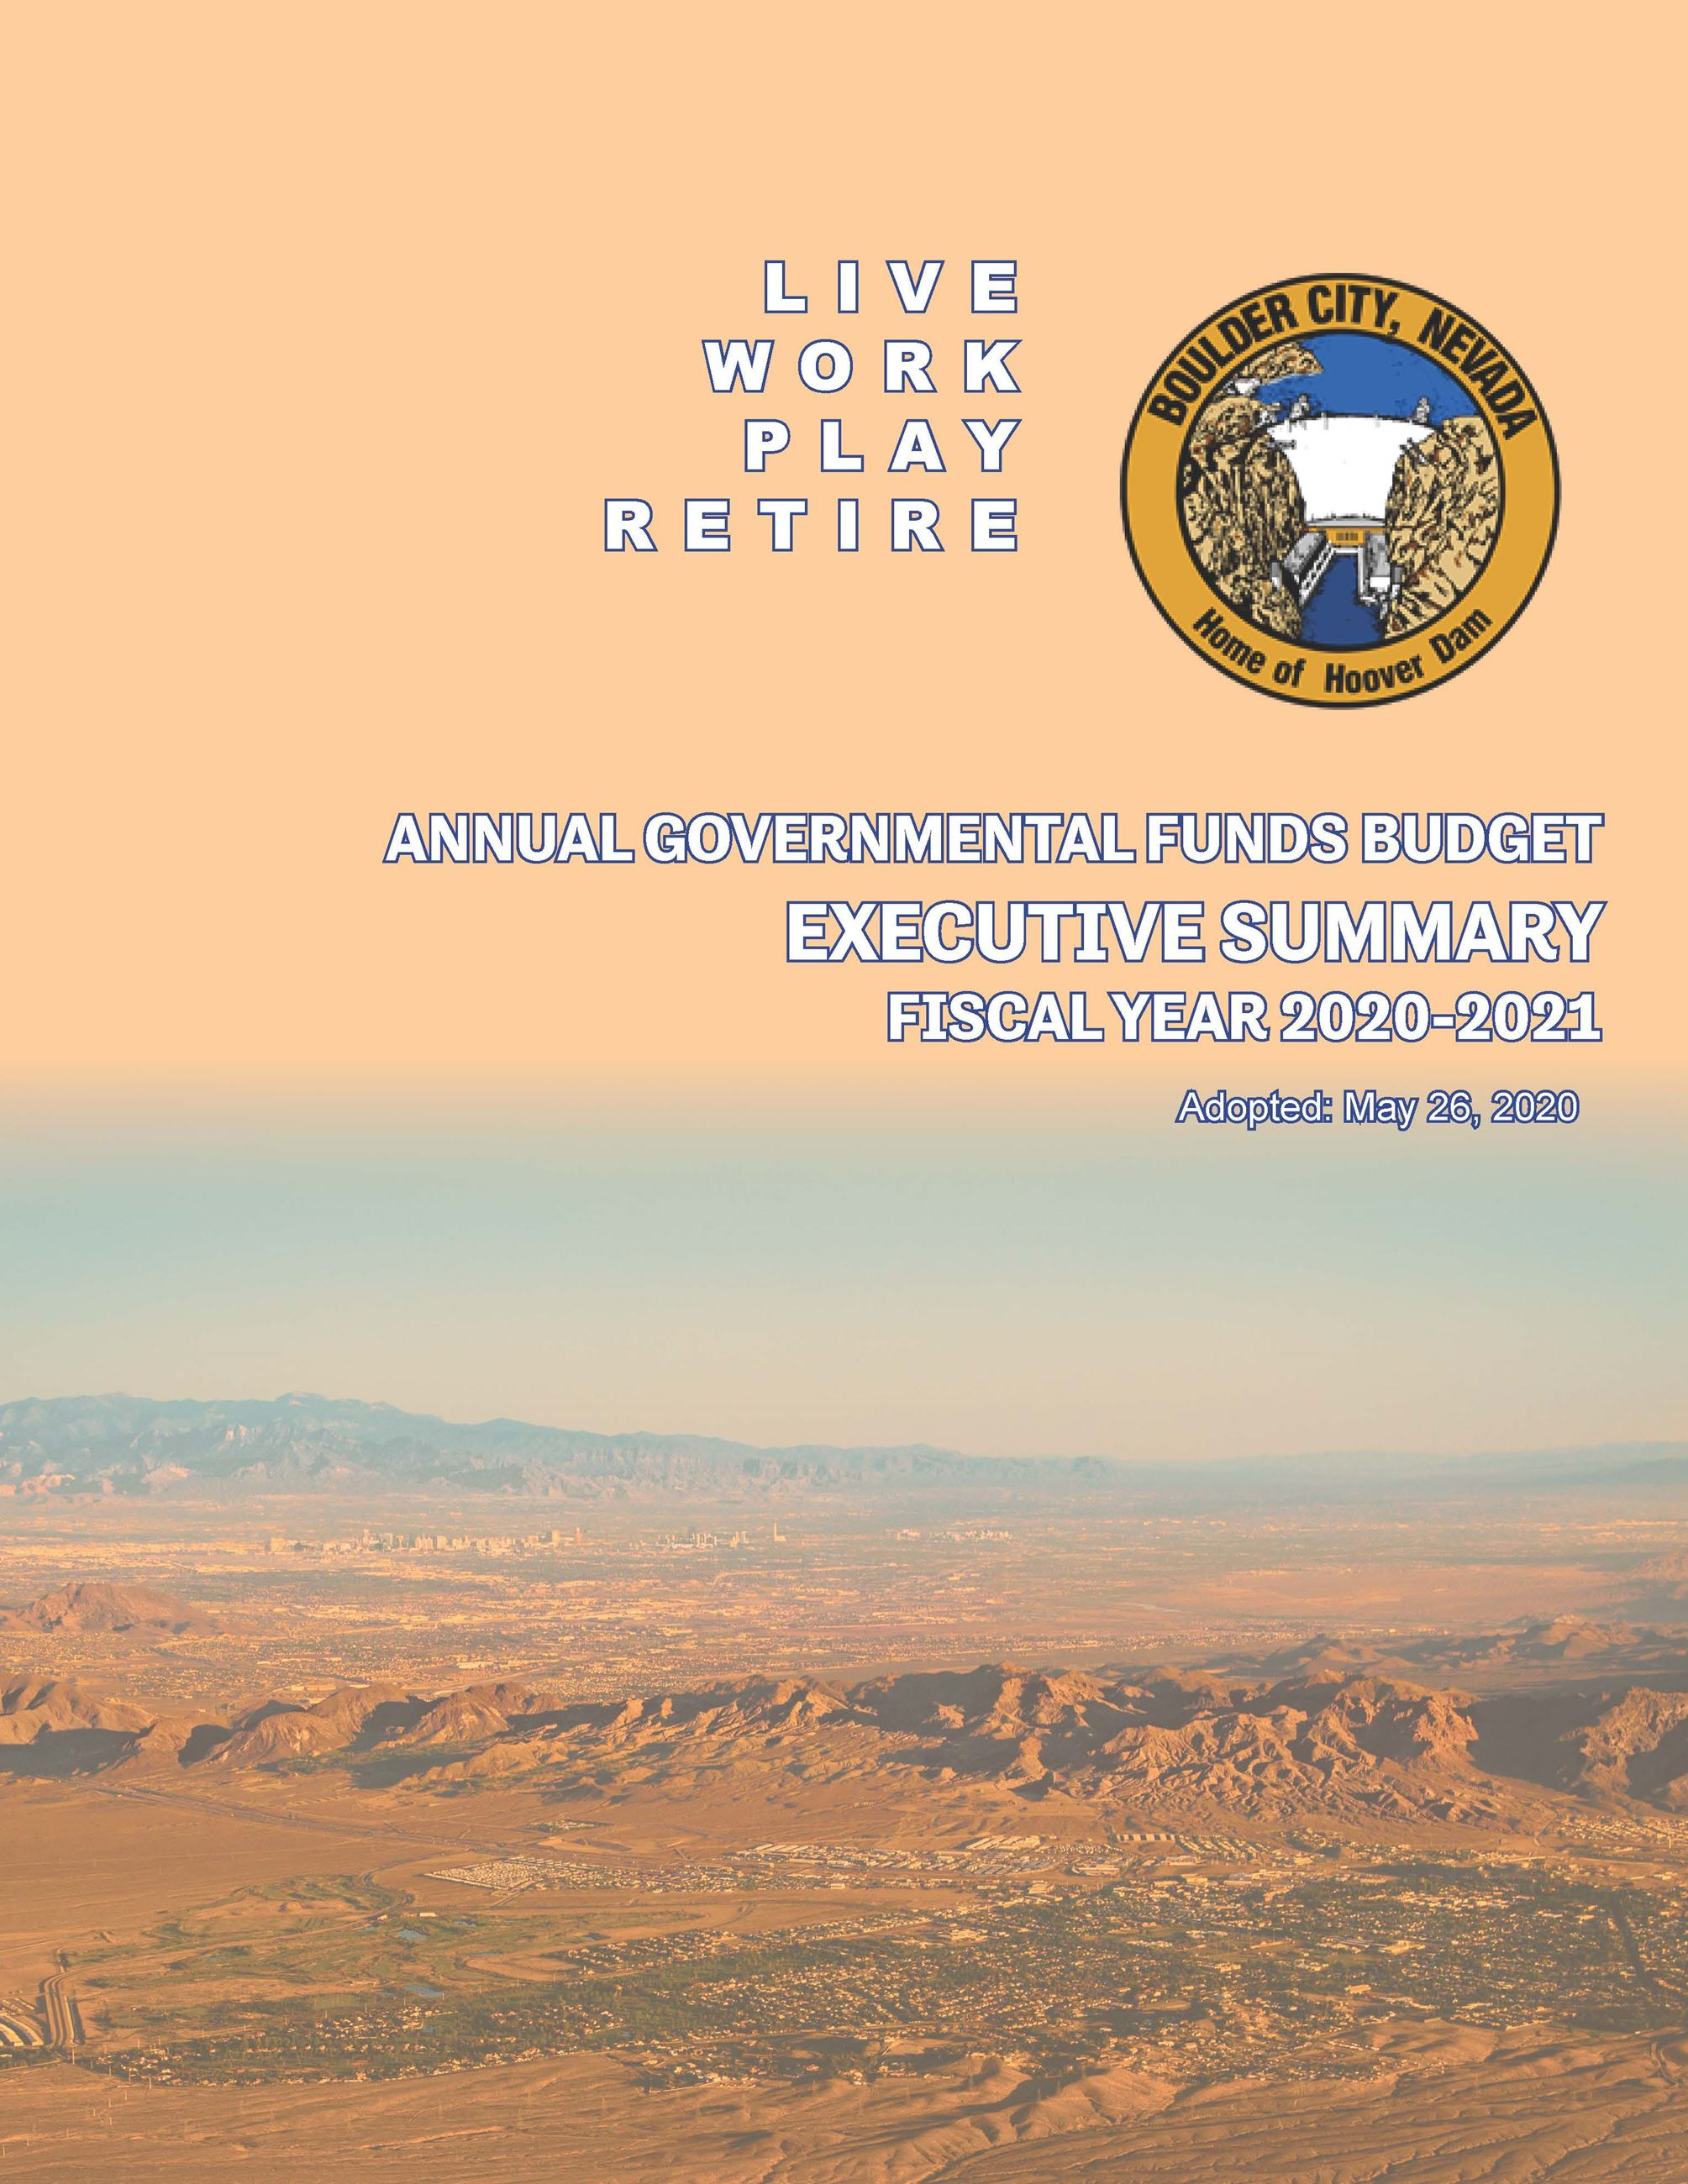 FY21 GF Budget Executive Summary - cover page